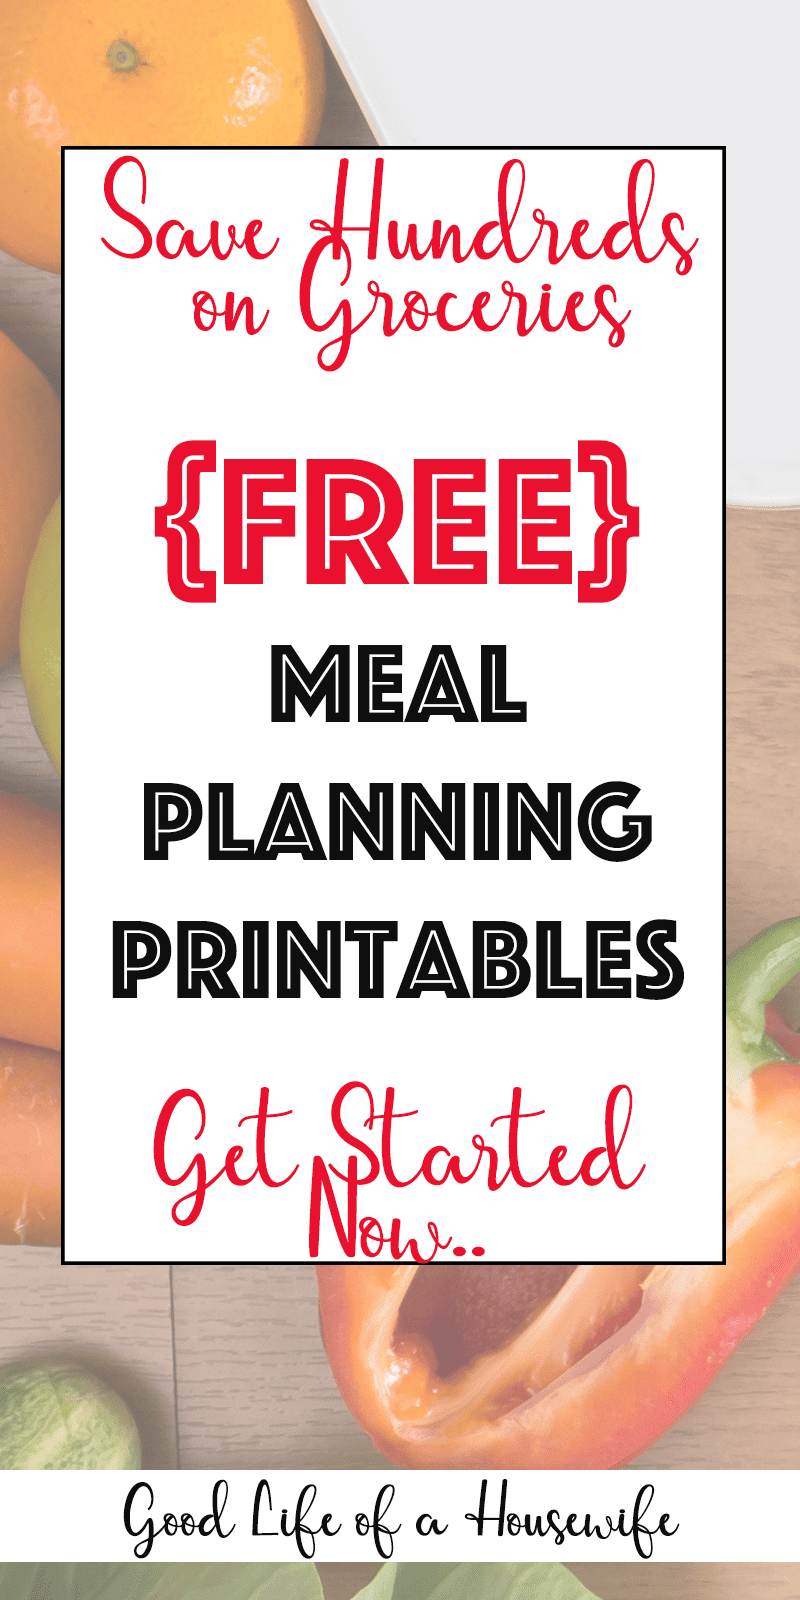 Free Meal Planning Printables to help you plan out your week and save hundreds on groceries. #mealplanning #mealplanningprintables #frugalliving #mealplanmenu